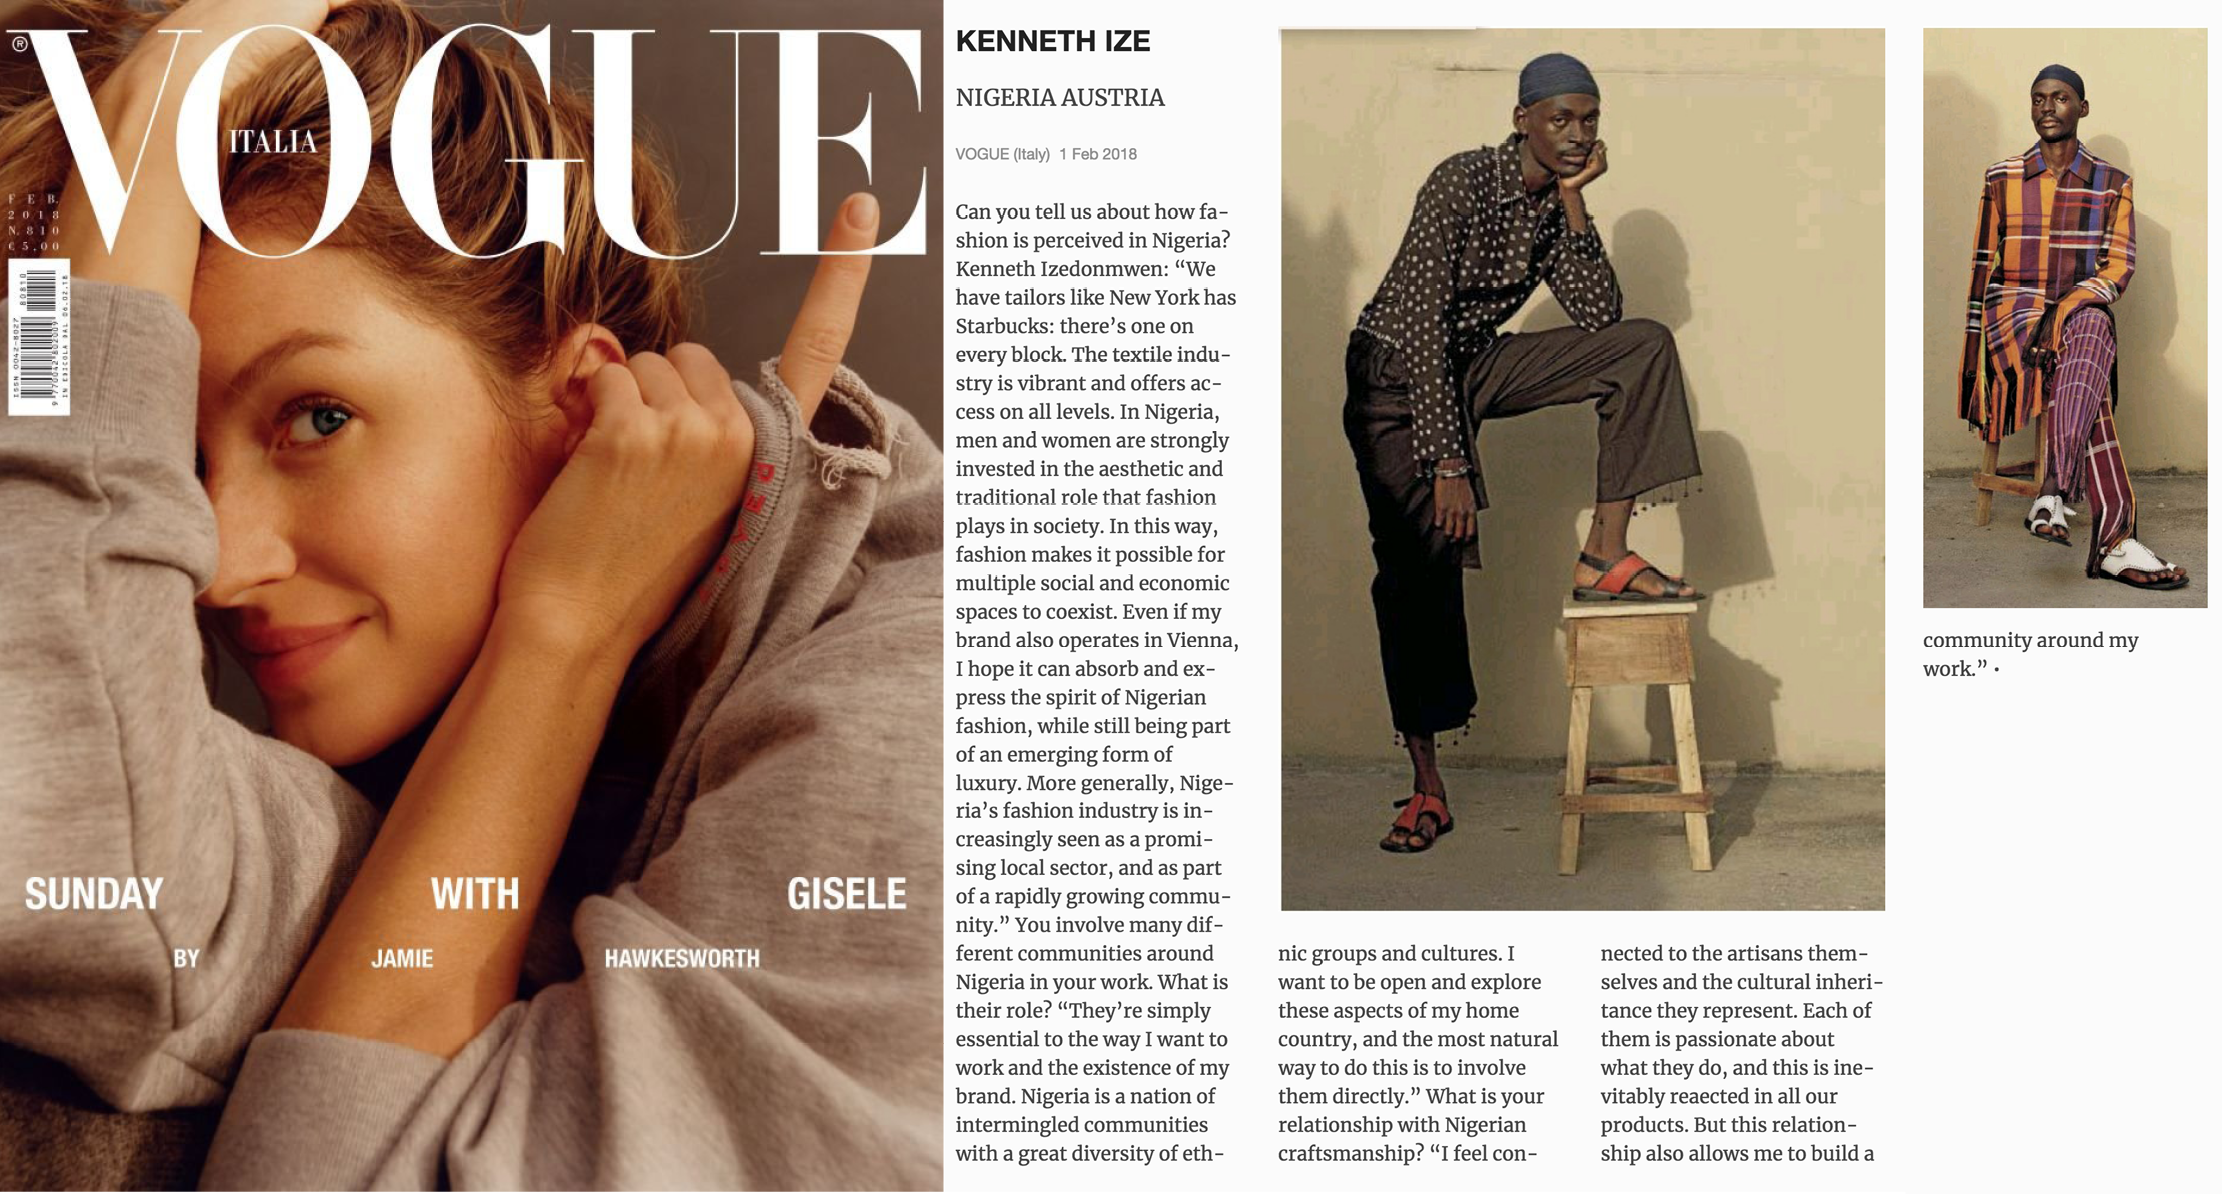 kenneth ize vogue italia february 2018